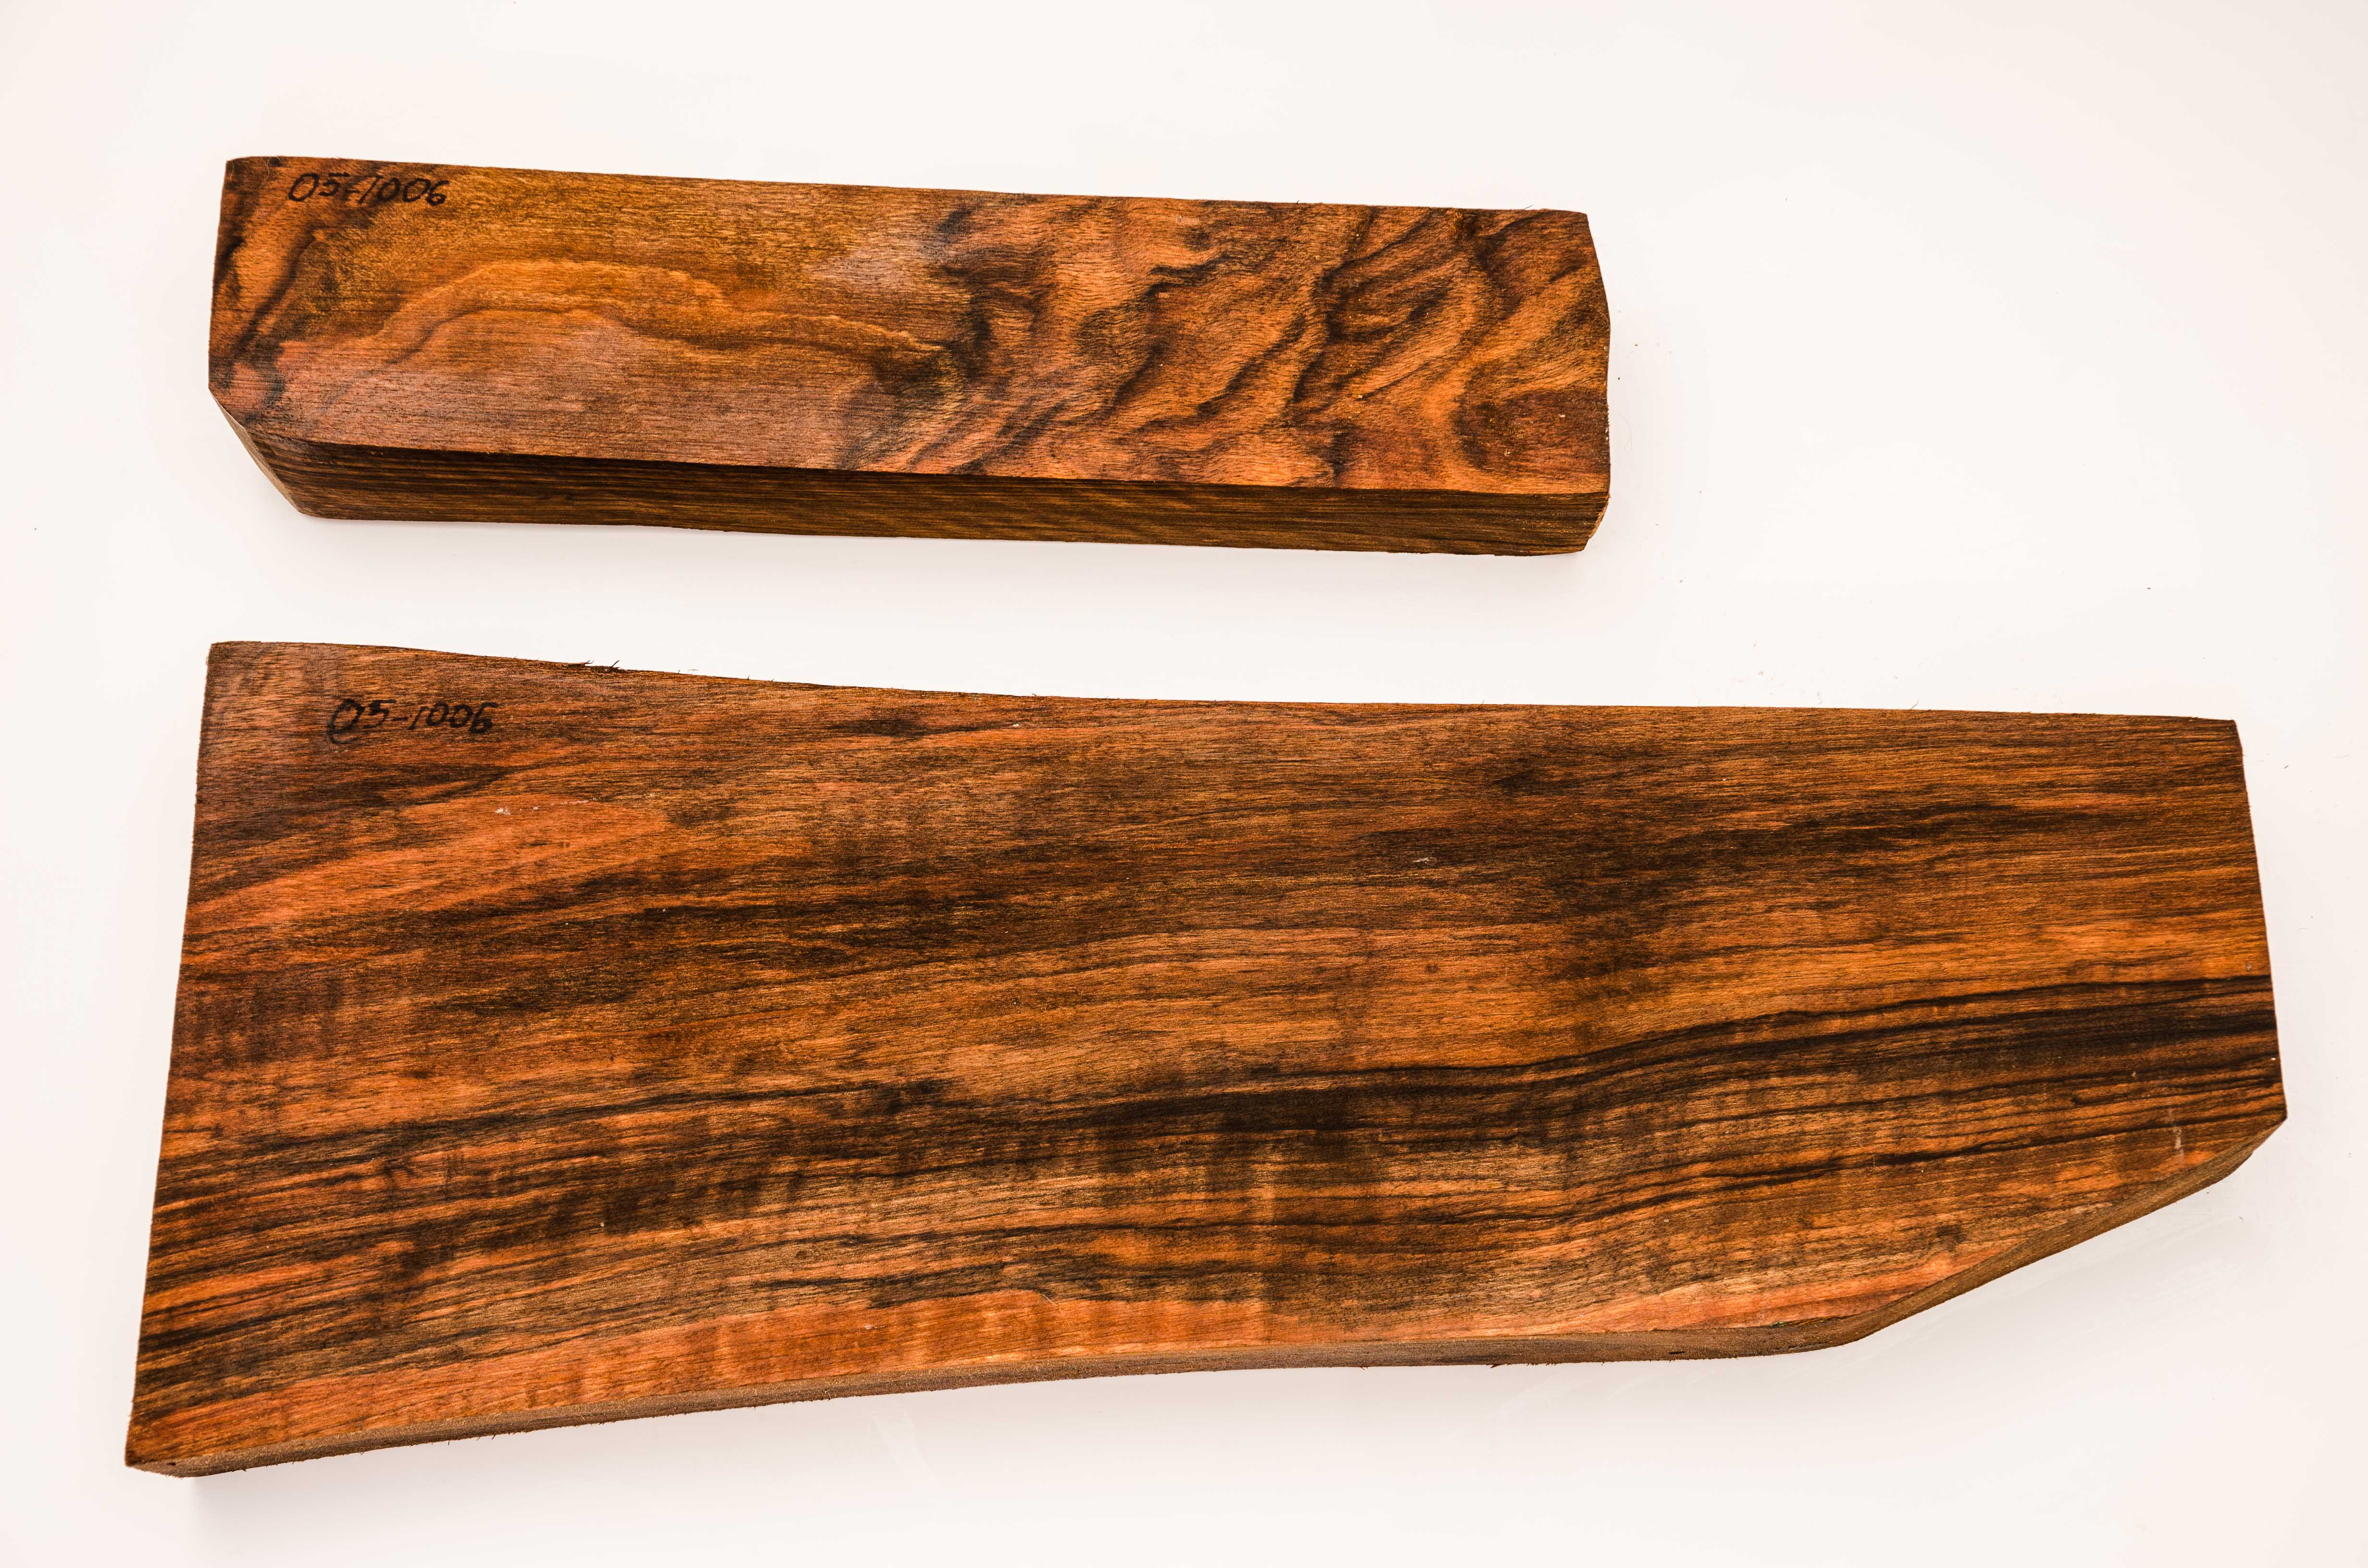 walnut_stock_blanks_for_guns_and_rifles-0531